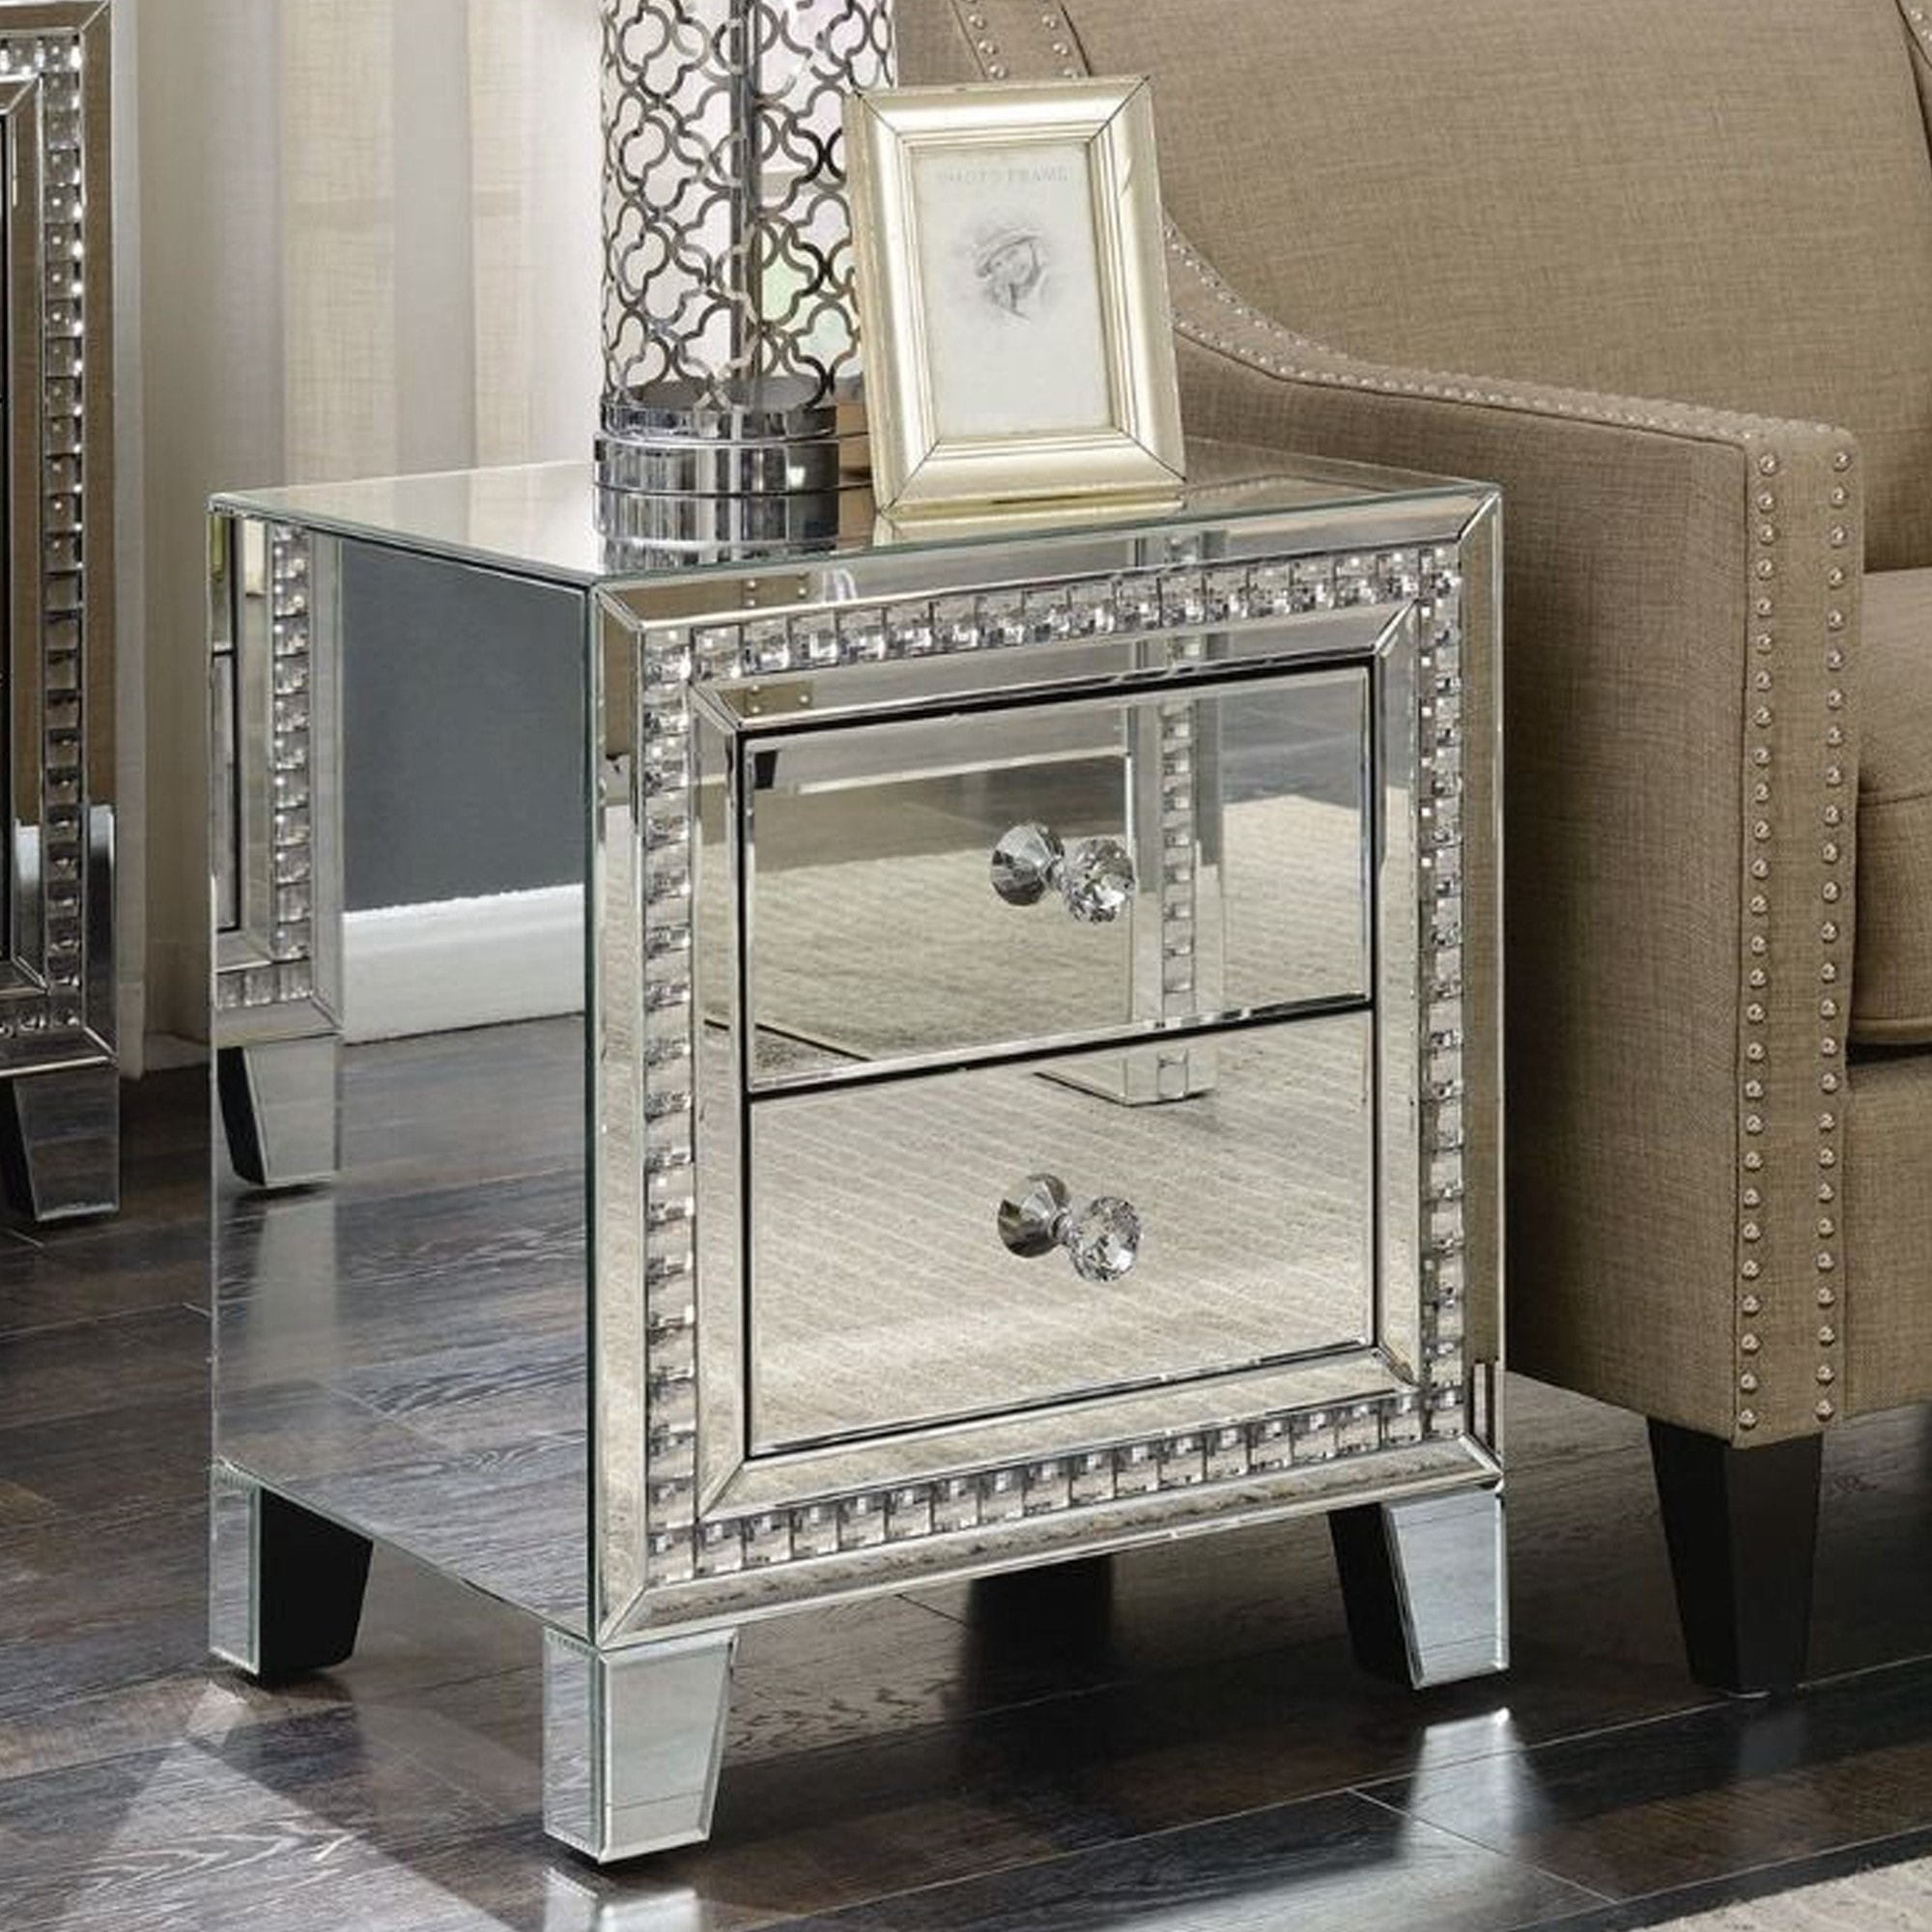 Loughton Mirror 2 Drawer Bedside Table Mirror Bedside